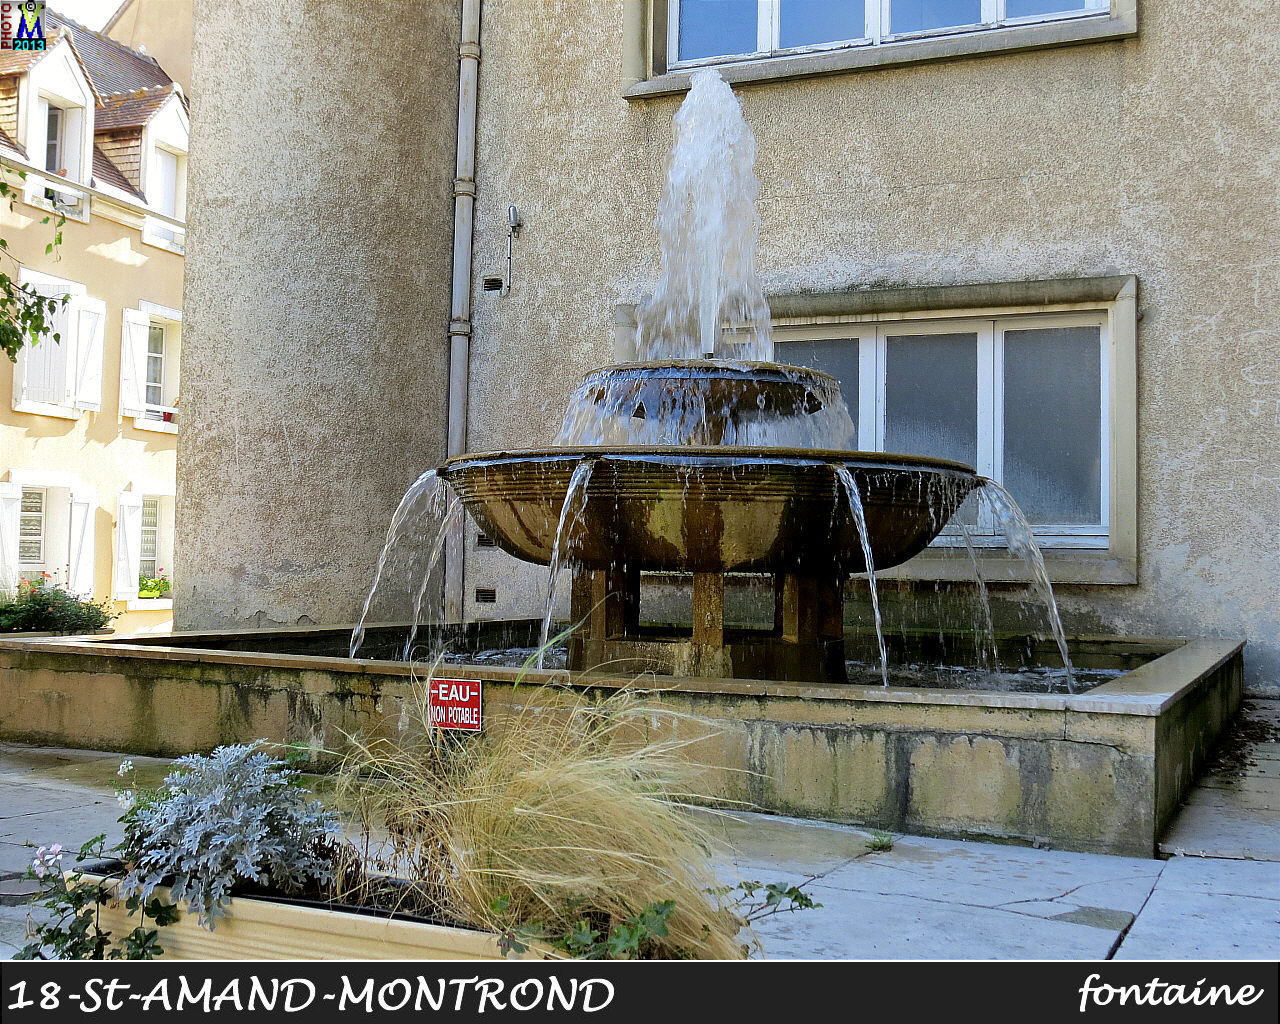 18StAMAND-MONTROND_fontaine_100.jpg